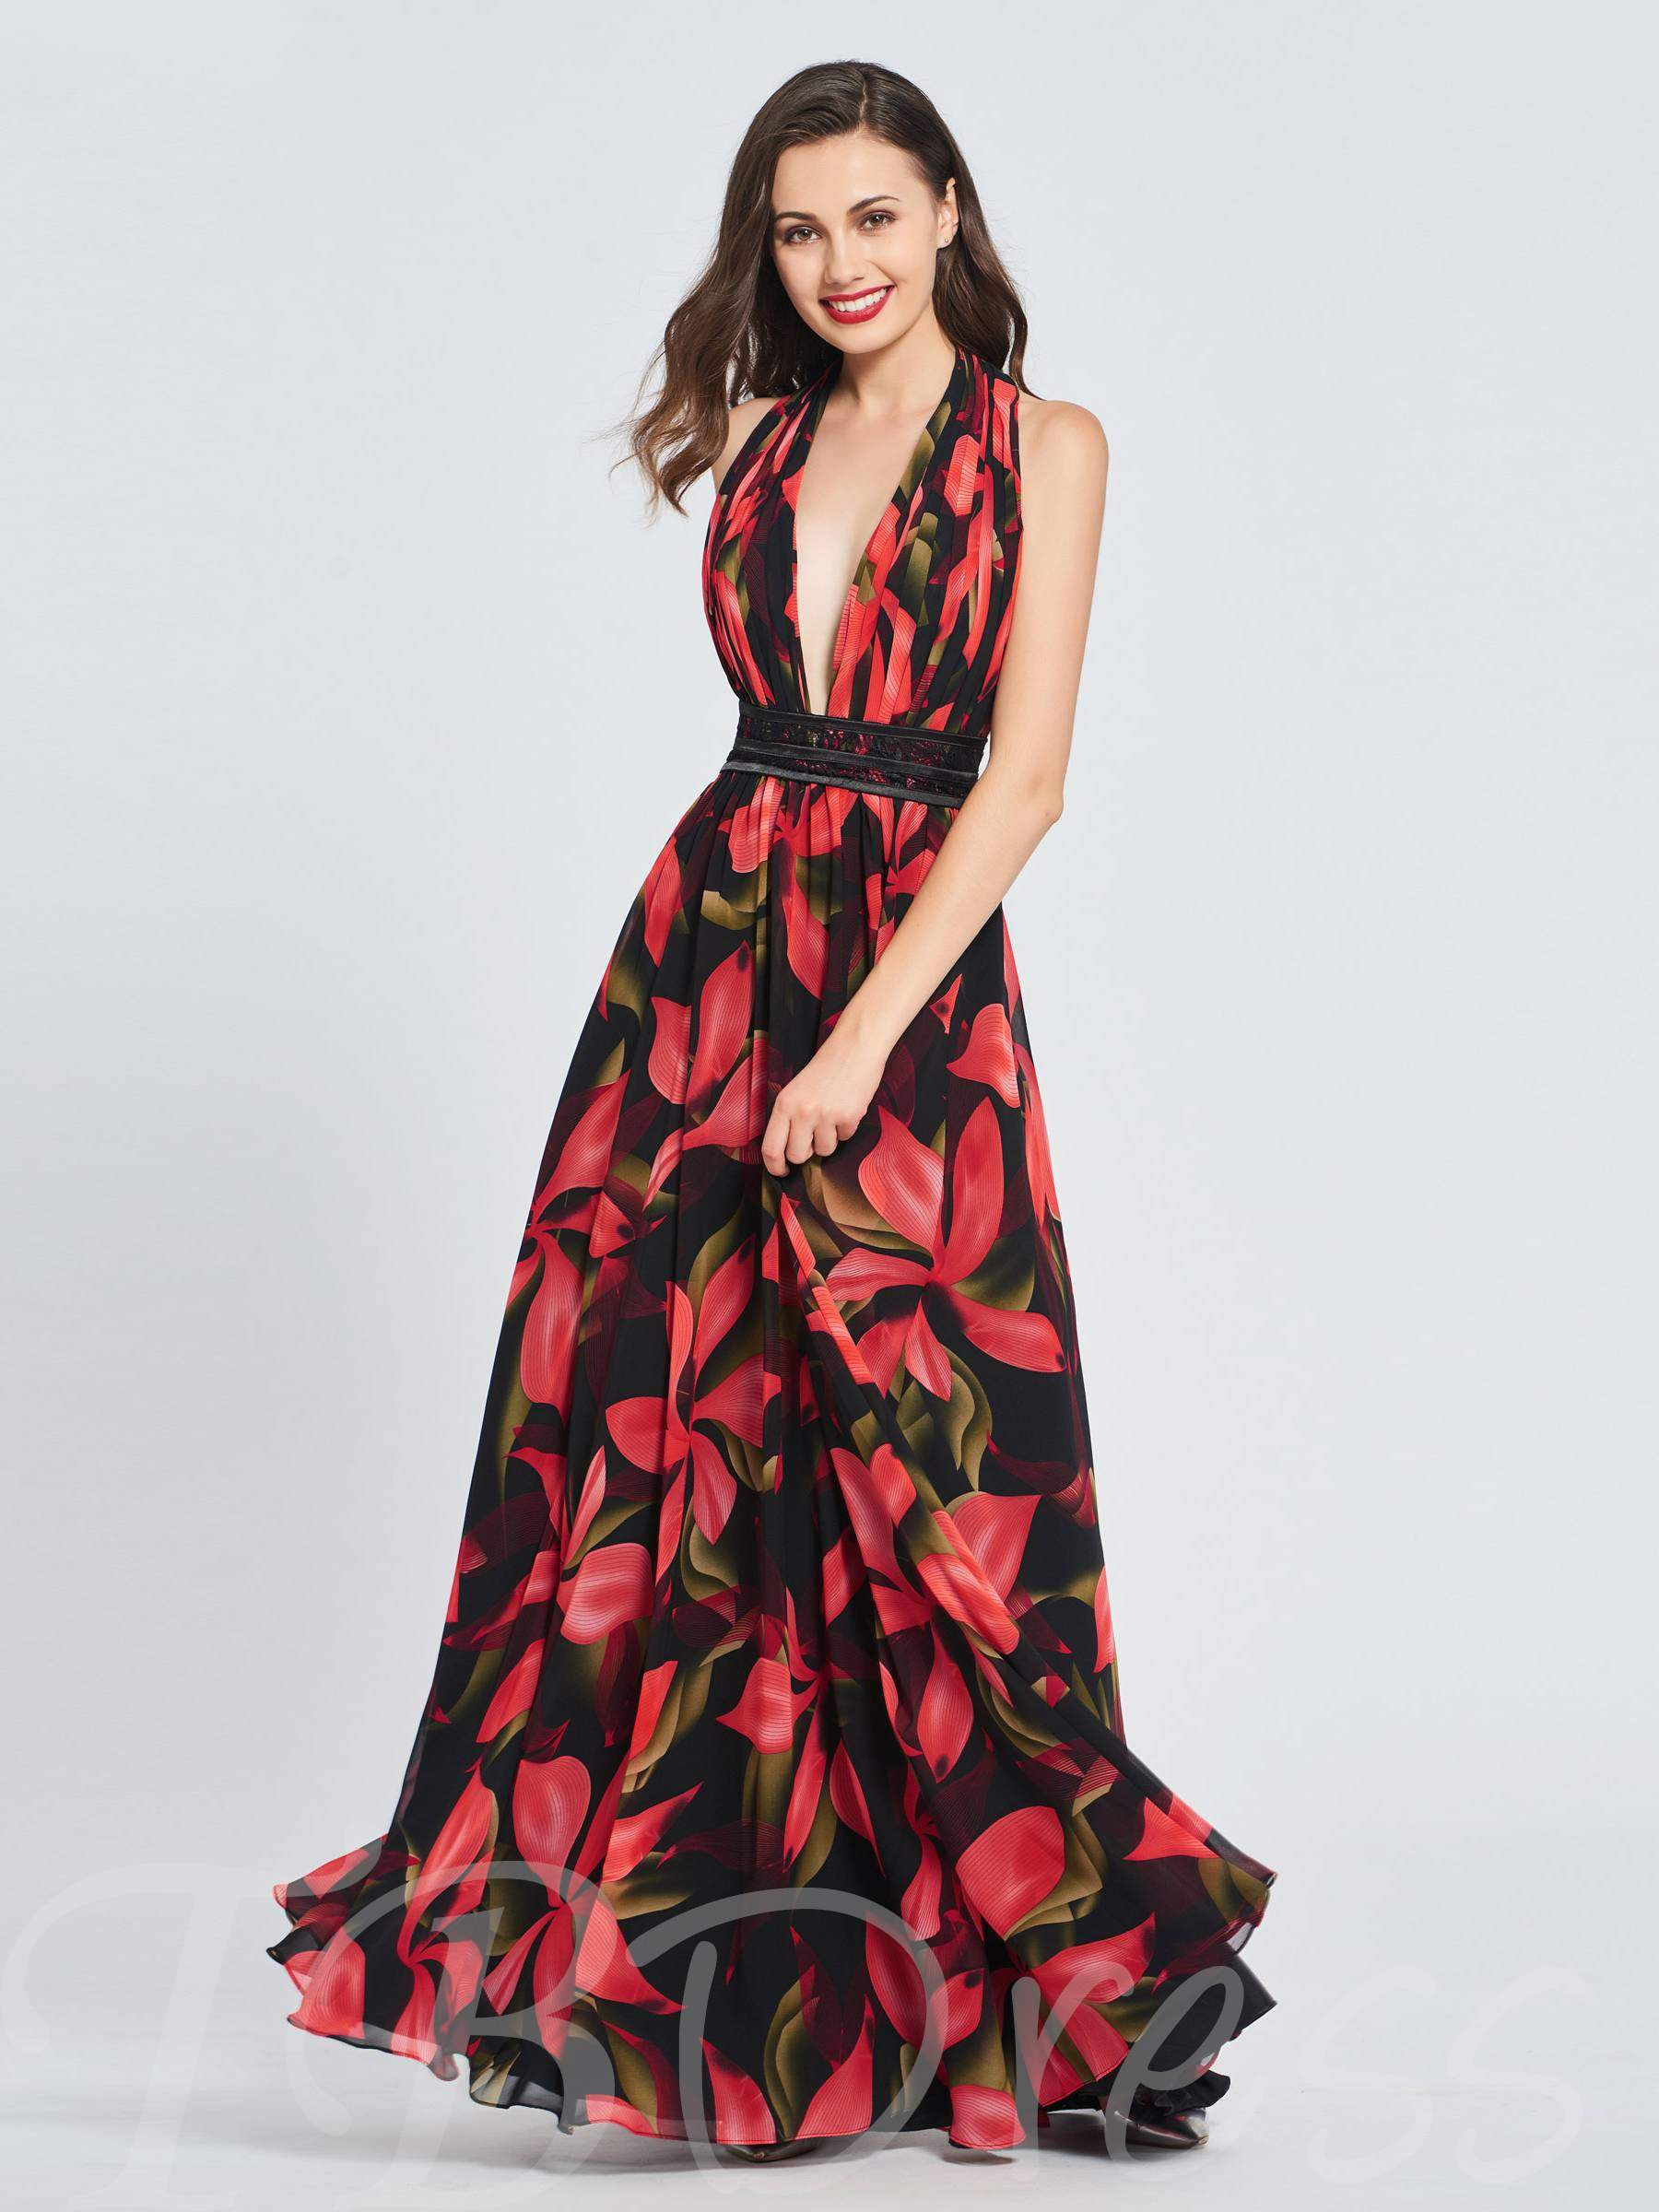 Buy A-Line Halter Printed Prom Dress, Spring,Summer,Fall,Winter, 13397995 for $159.99 in TBDress store